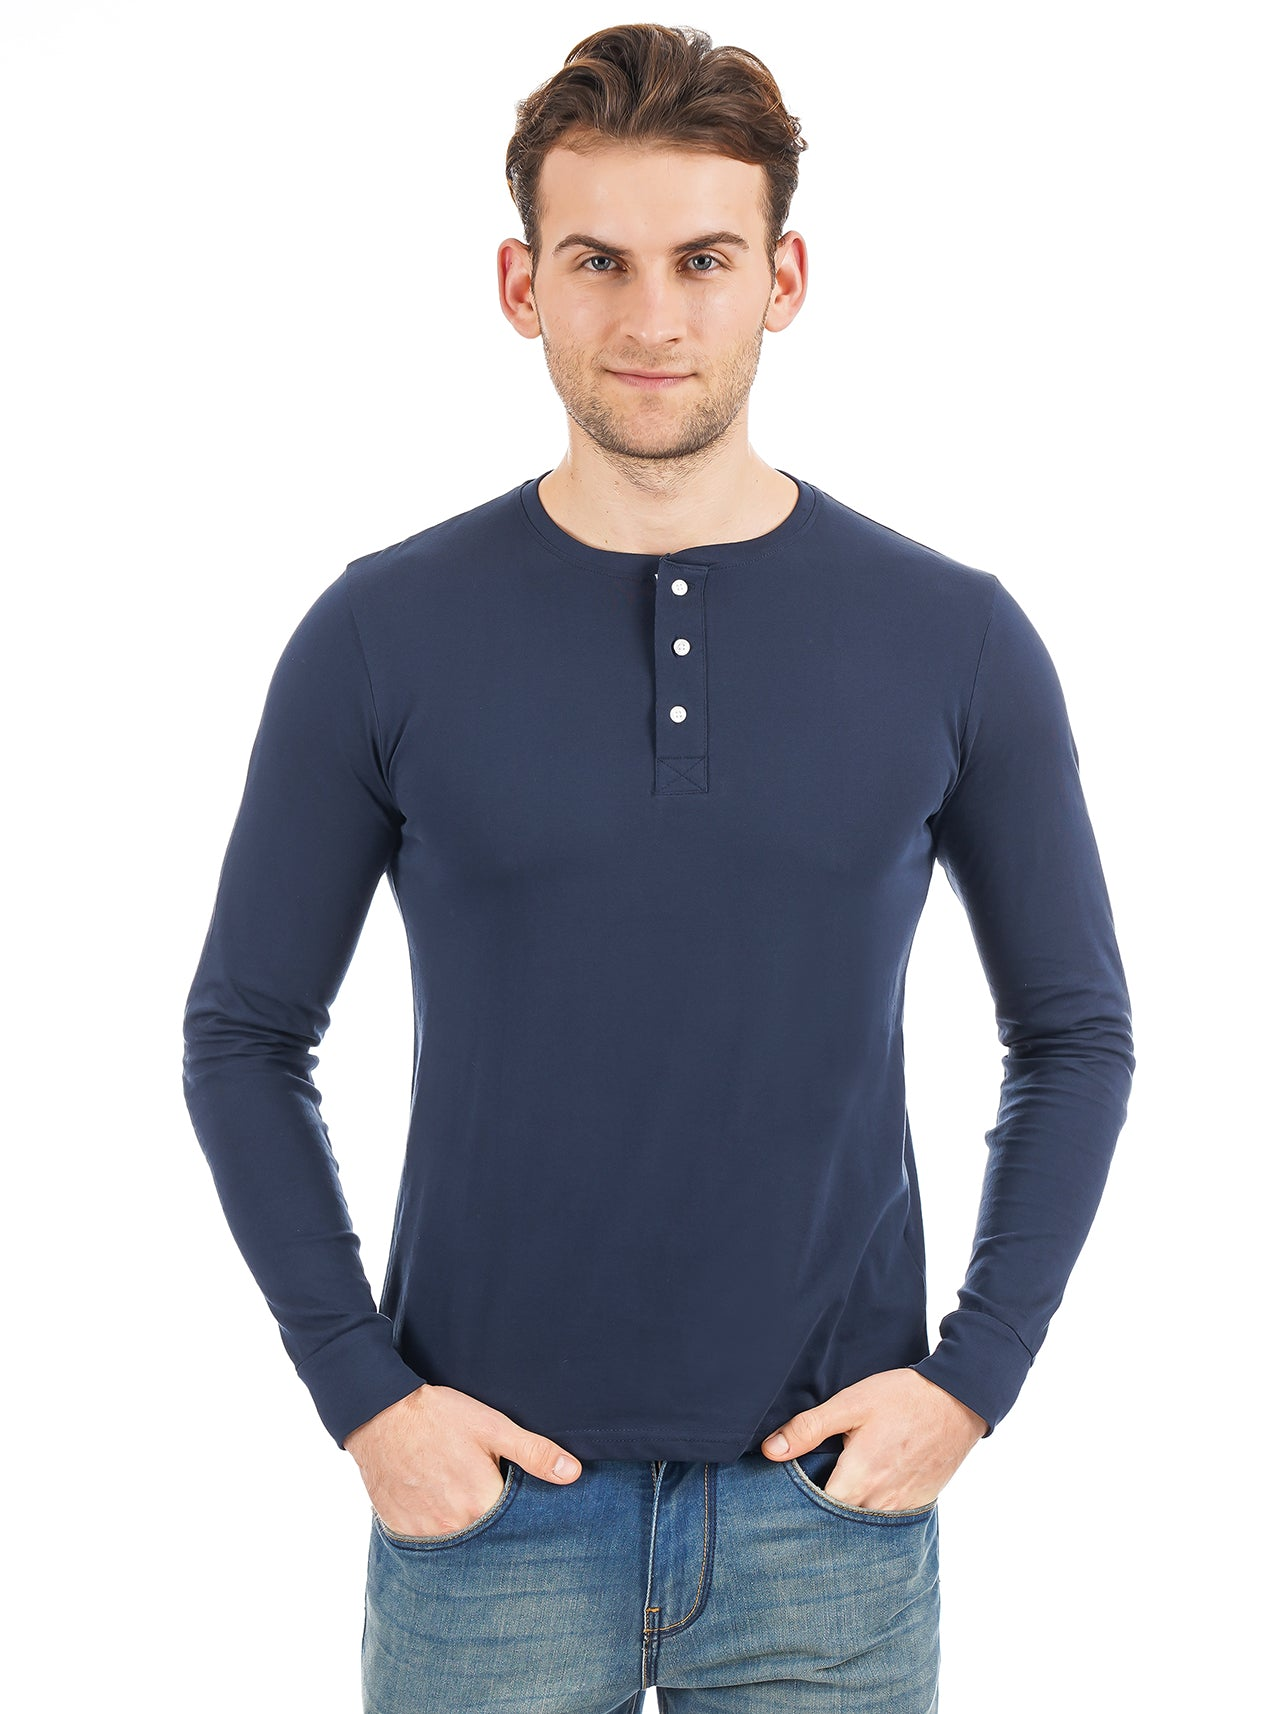 Rock Hooper Men's Full sleeve Henley Neck Cotton Navy Blue T-Shirt